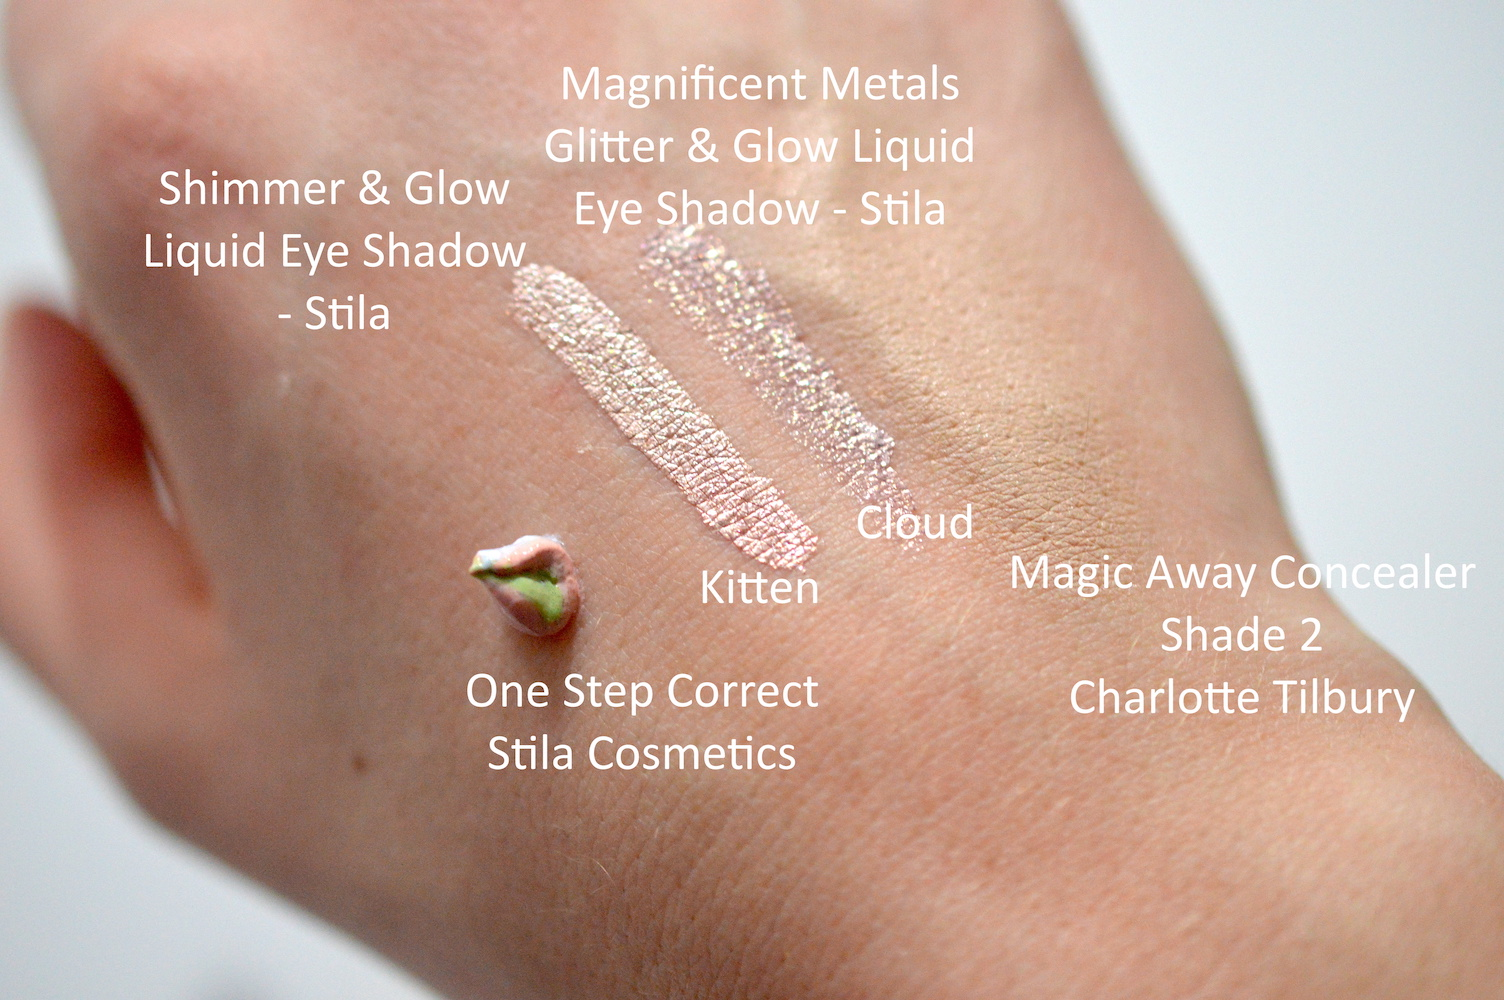 Stila Magnificent Metals Glitter Eye Shadows